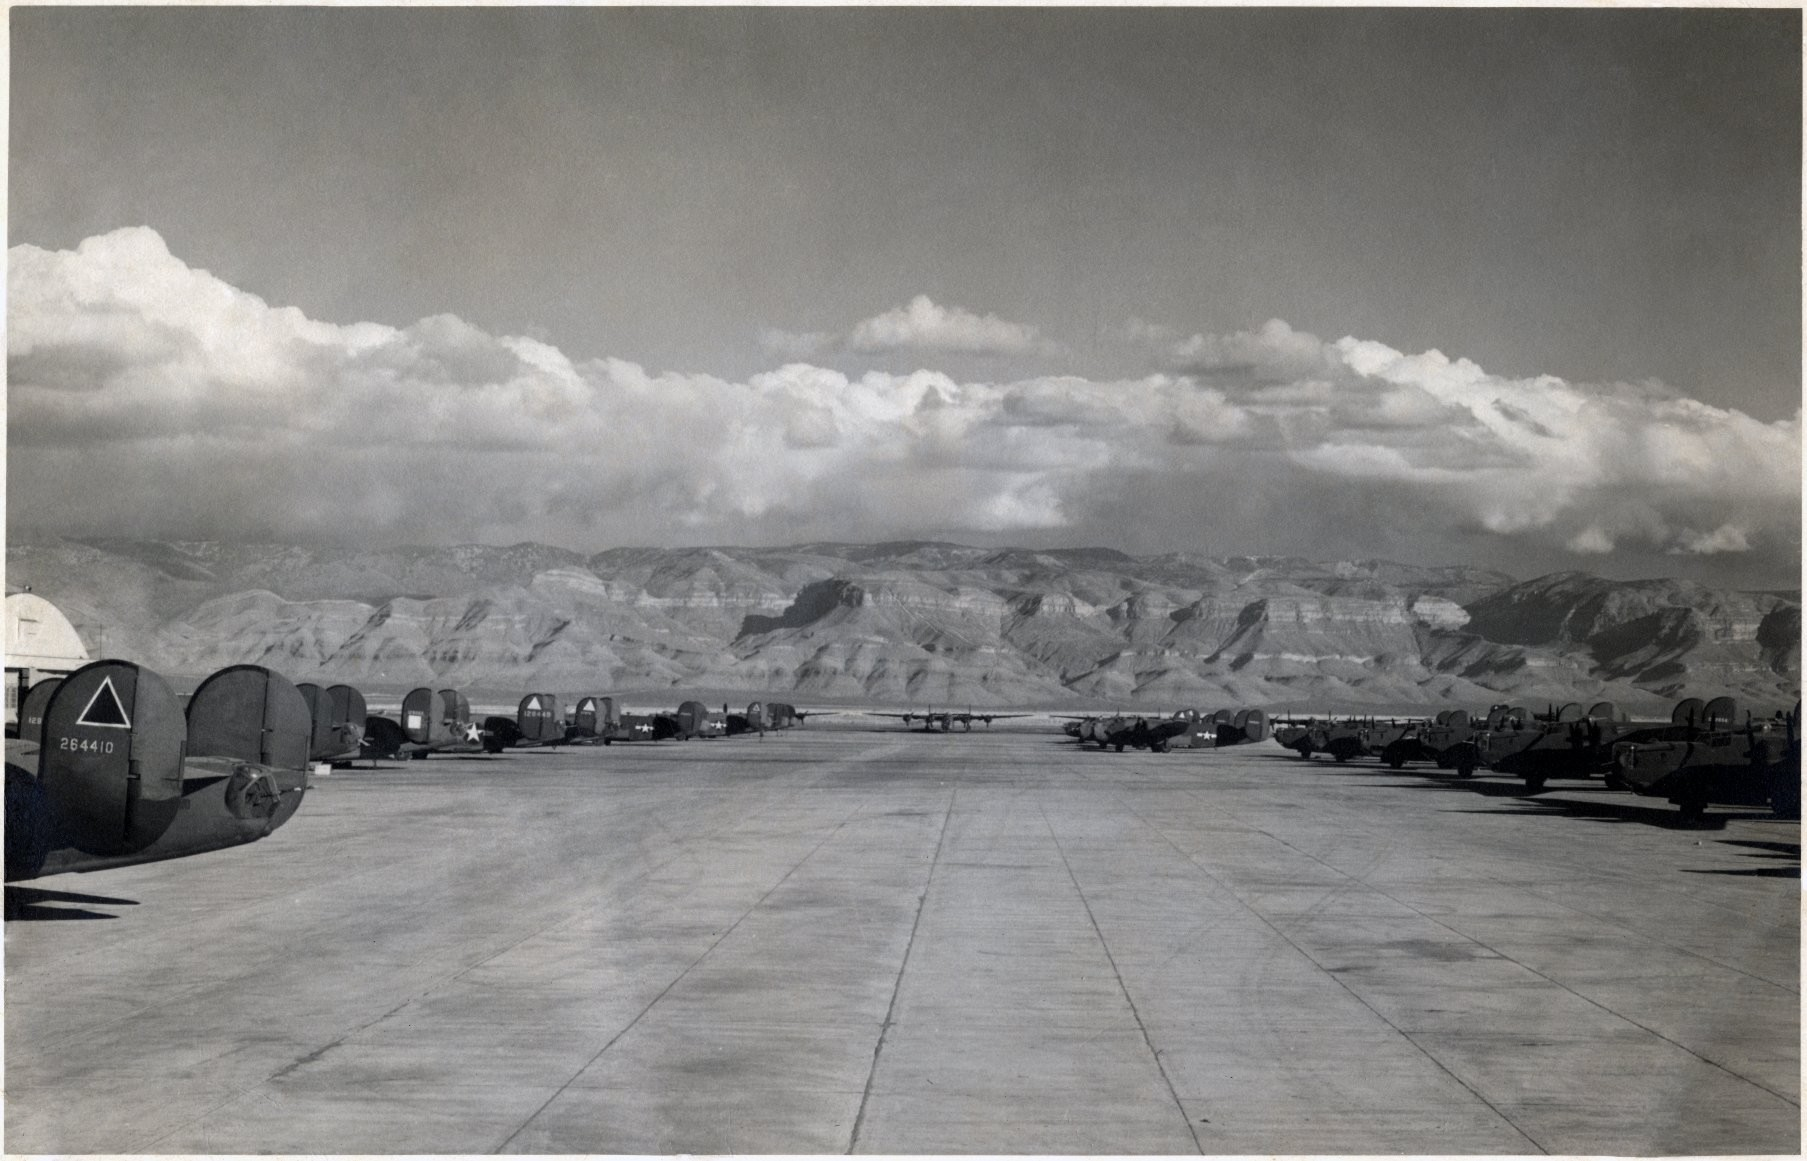 833rd aero squadron - B 24 Used For Training At Alamogordo Aaf